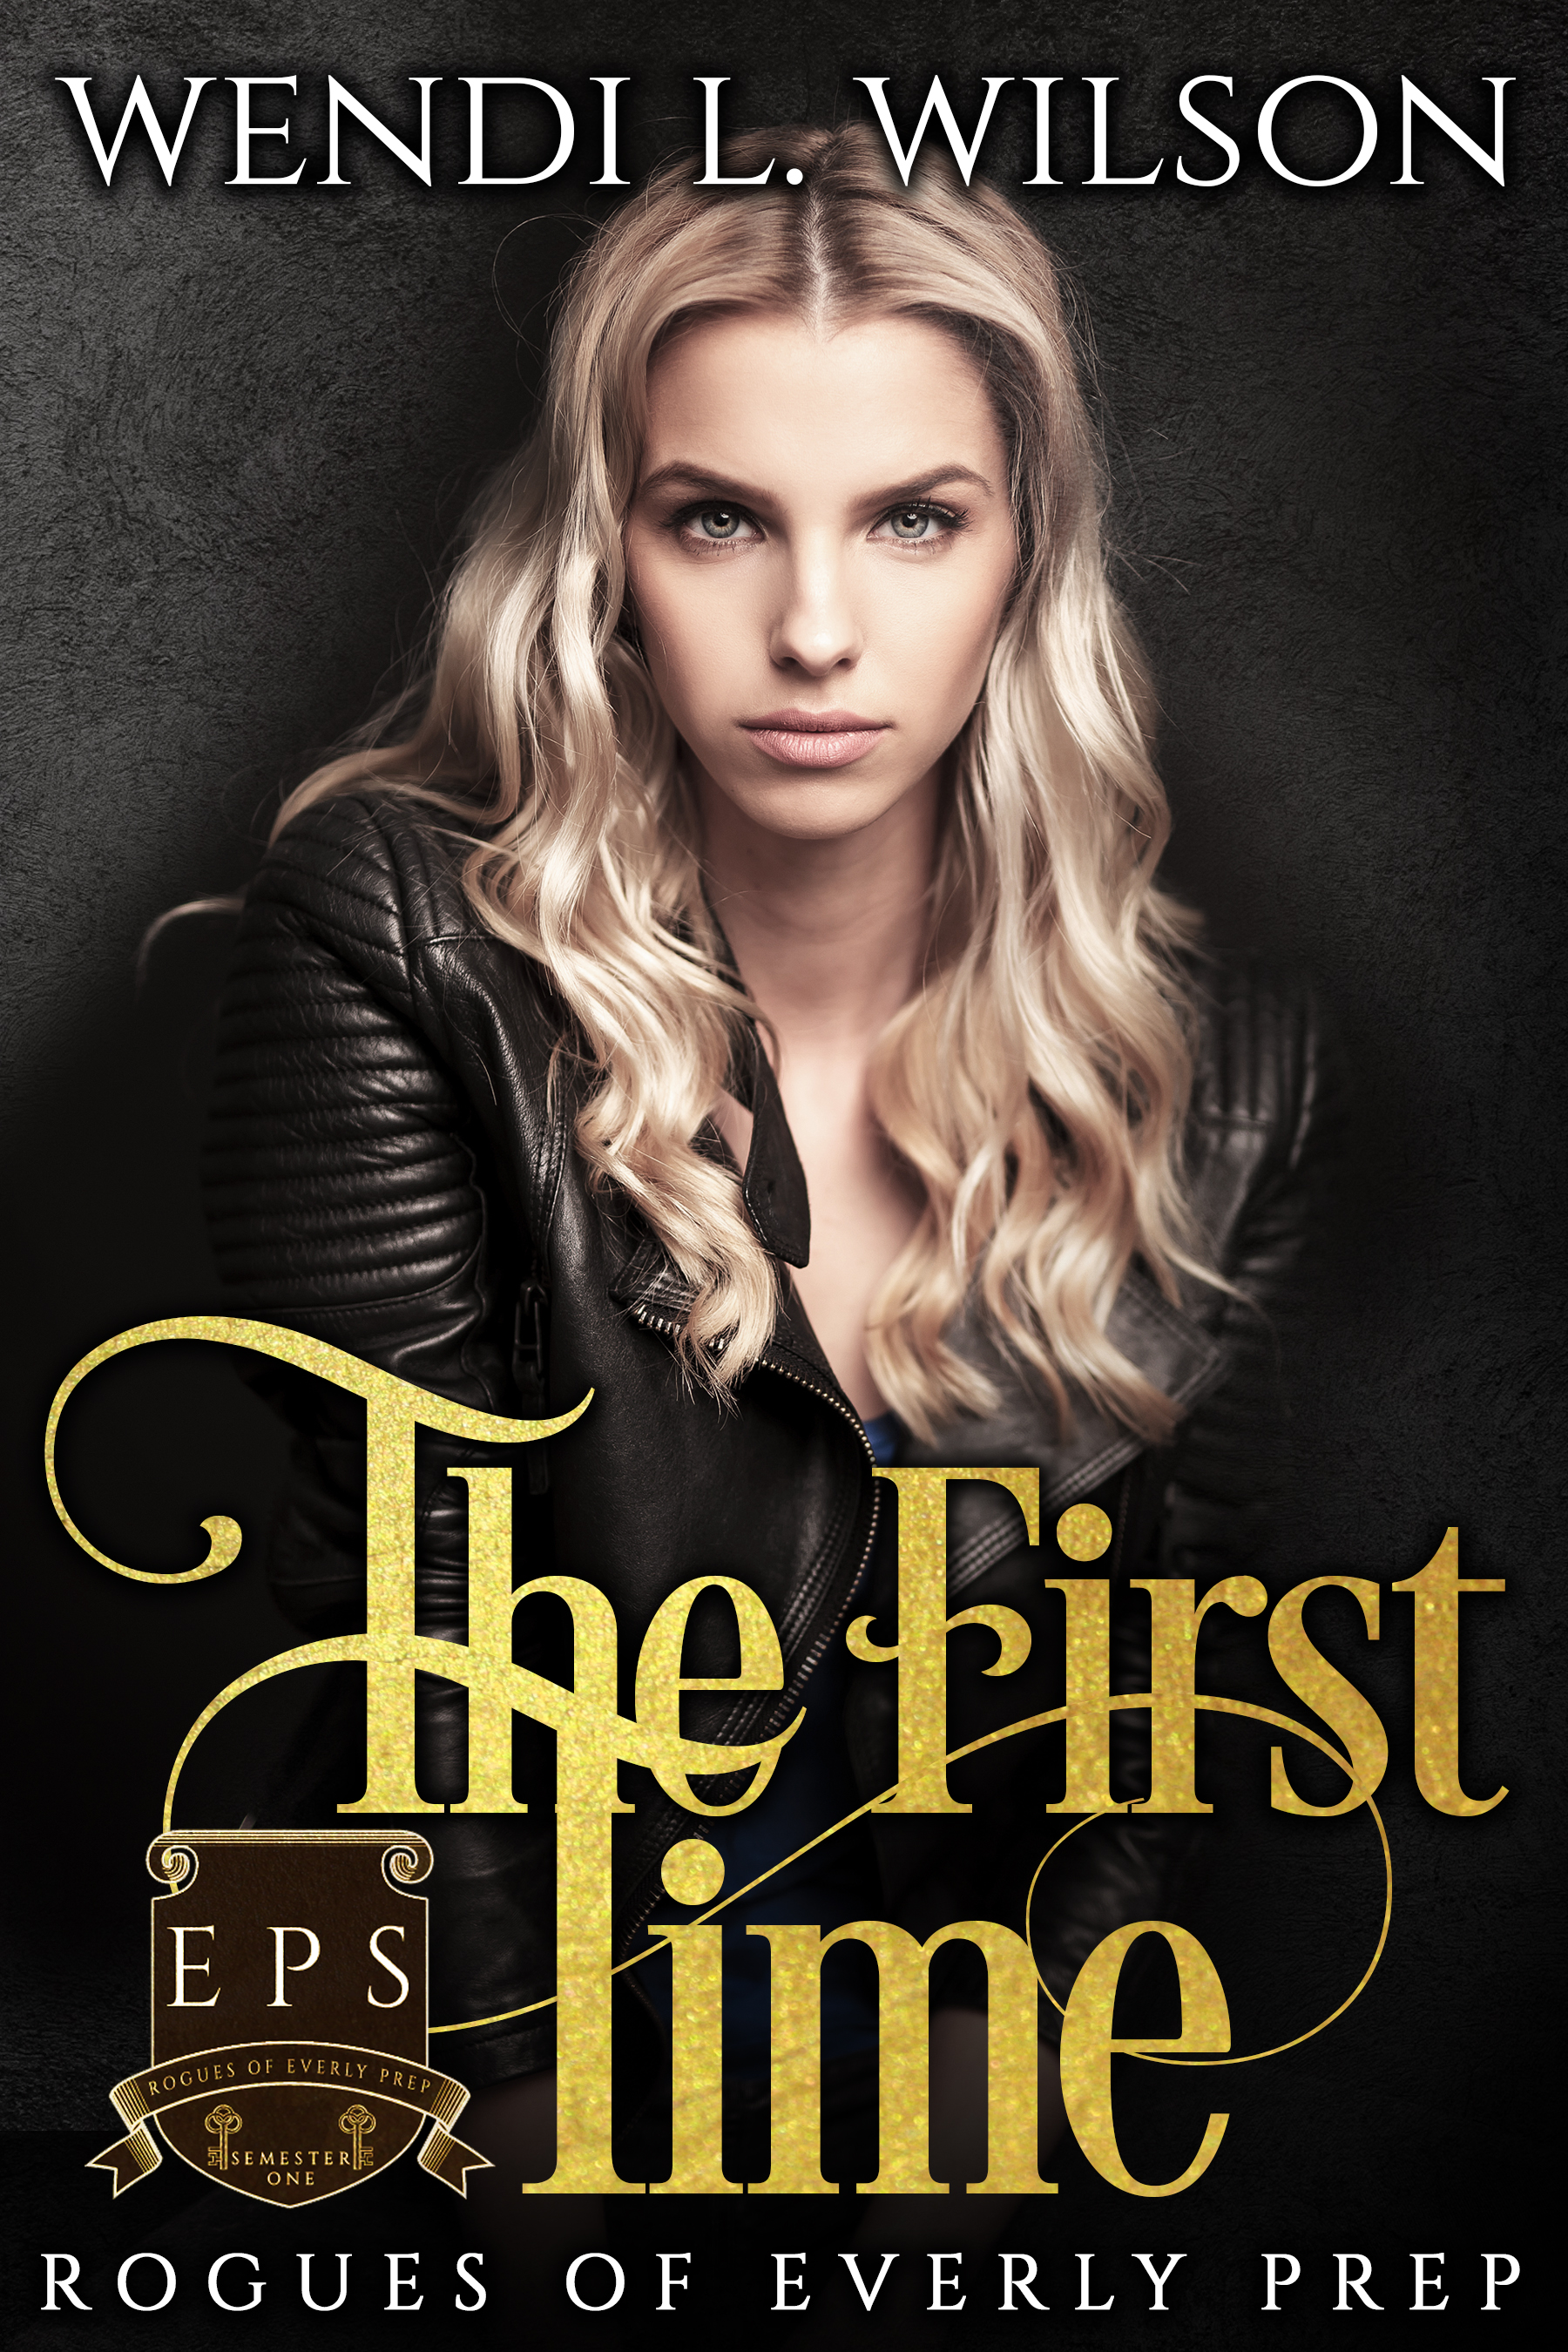 The First Time (Rogues of Everly Prep #1)